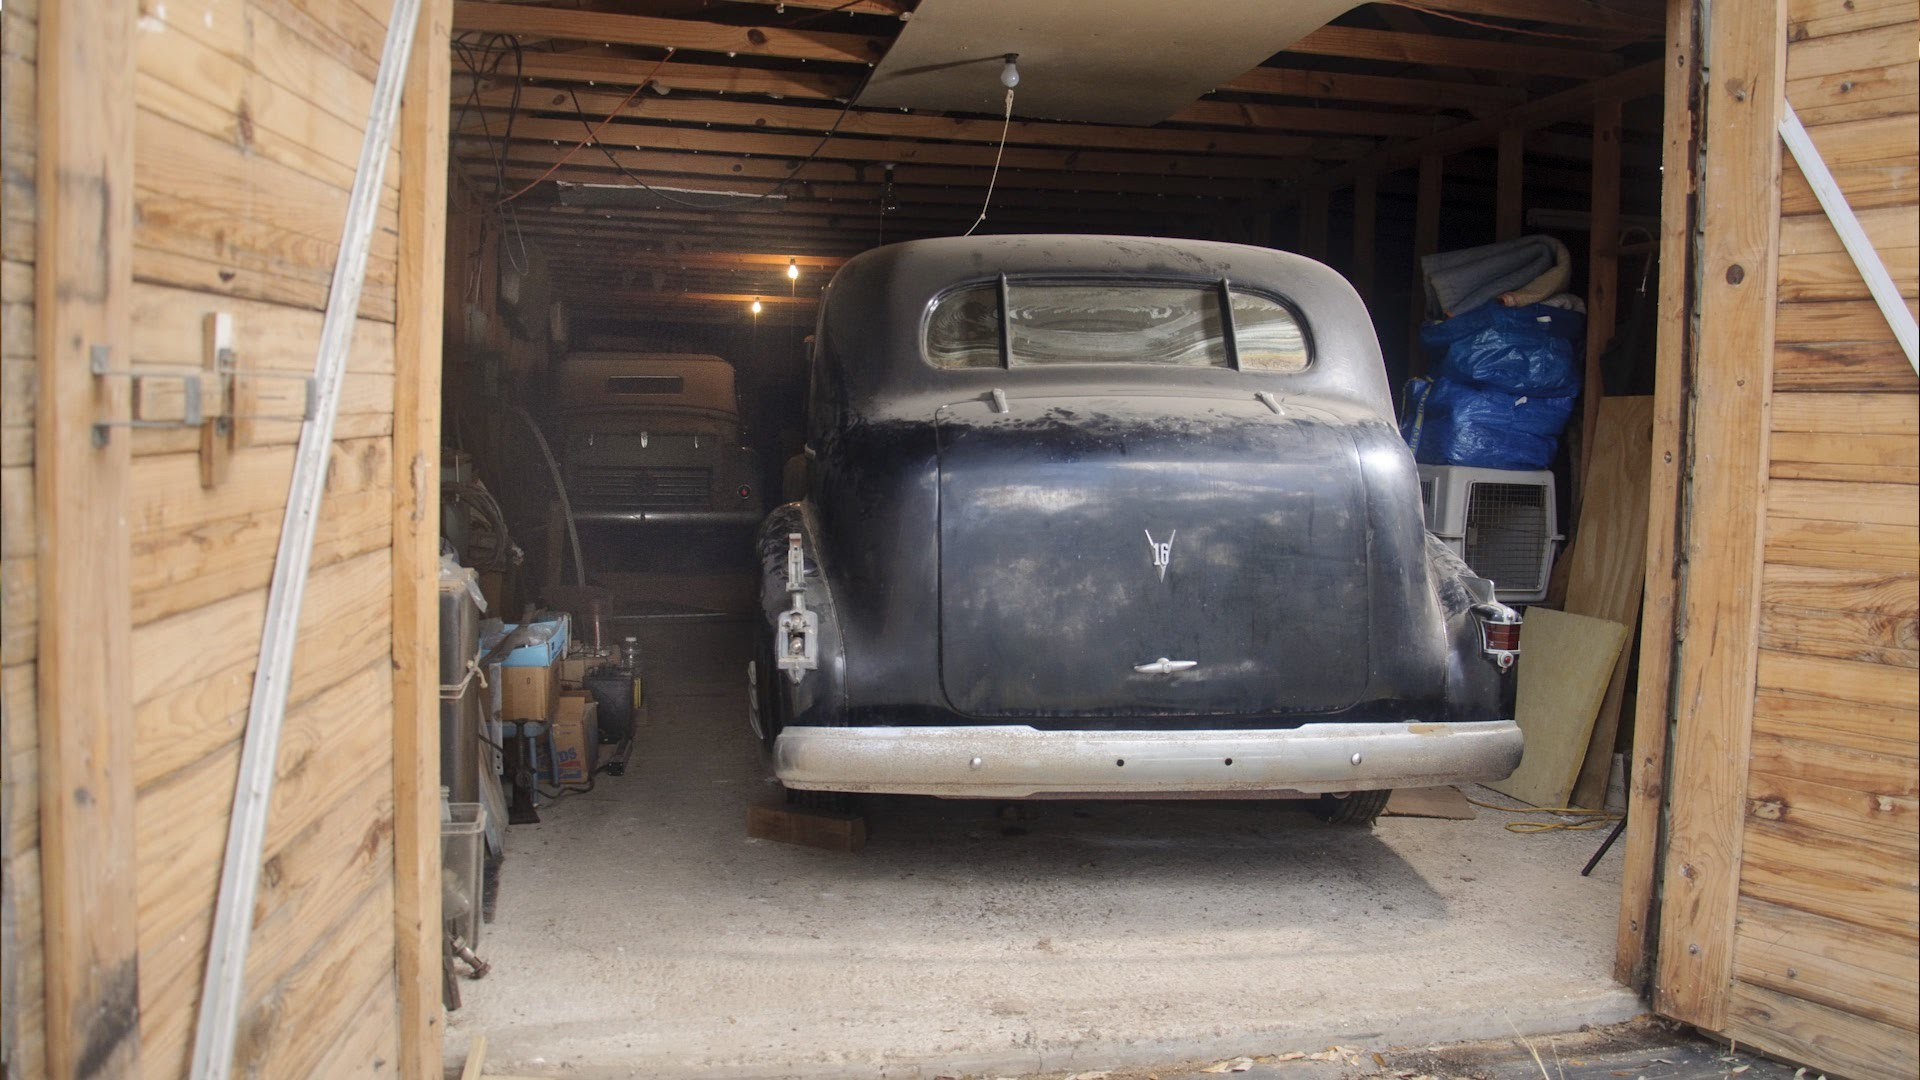 Texas Barn Find Five Pre War Automobiles Discovered